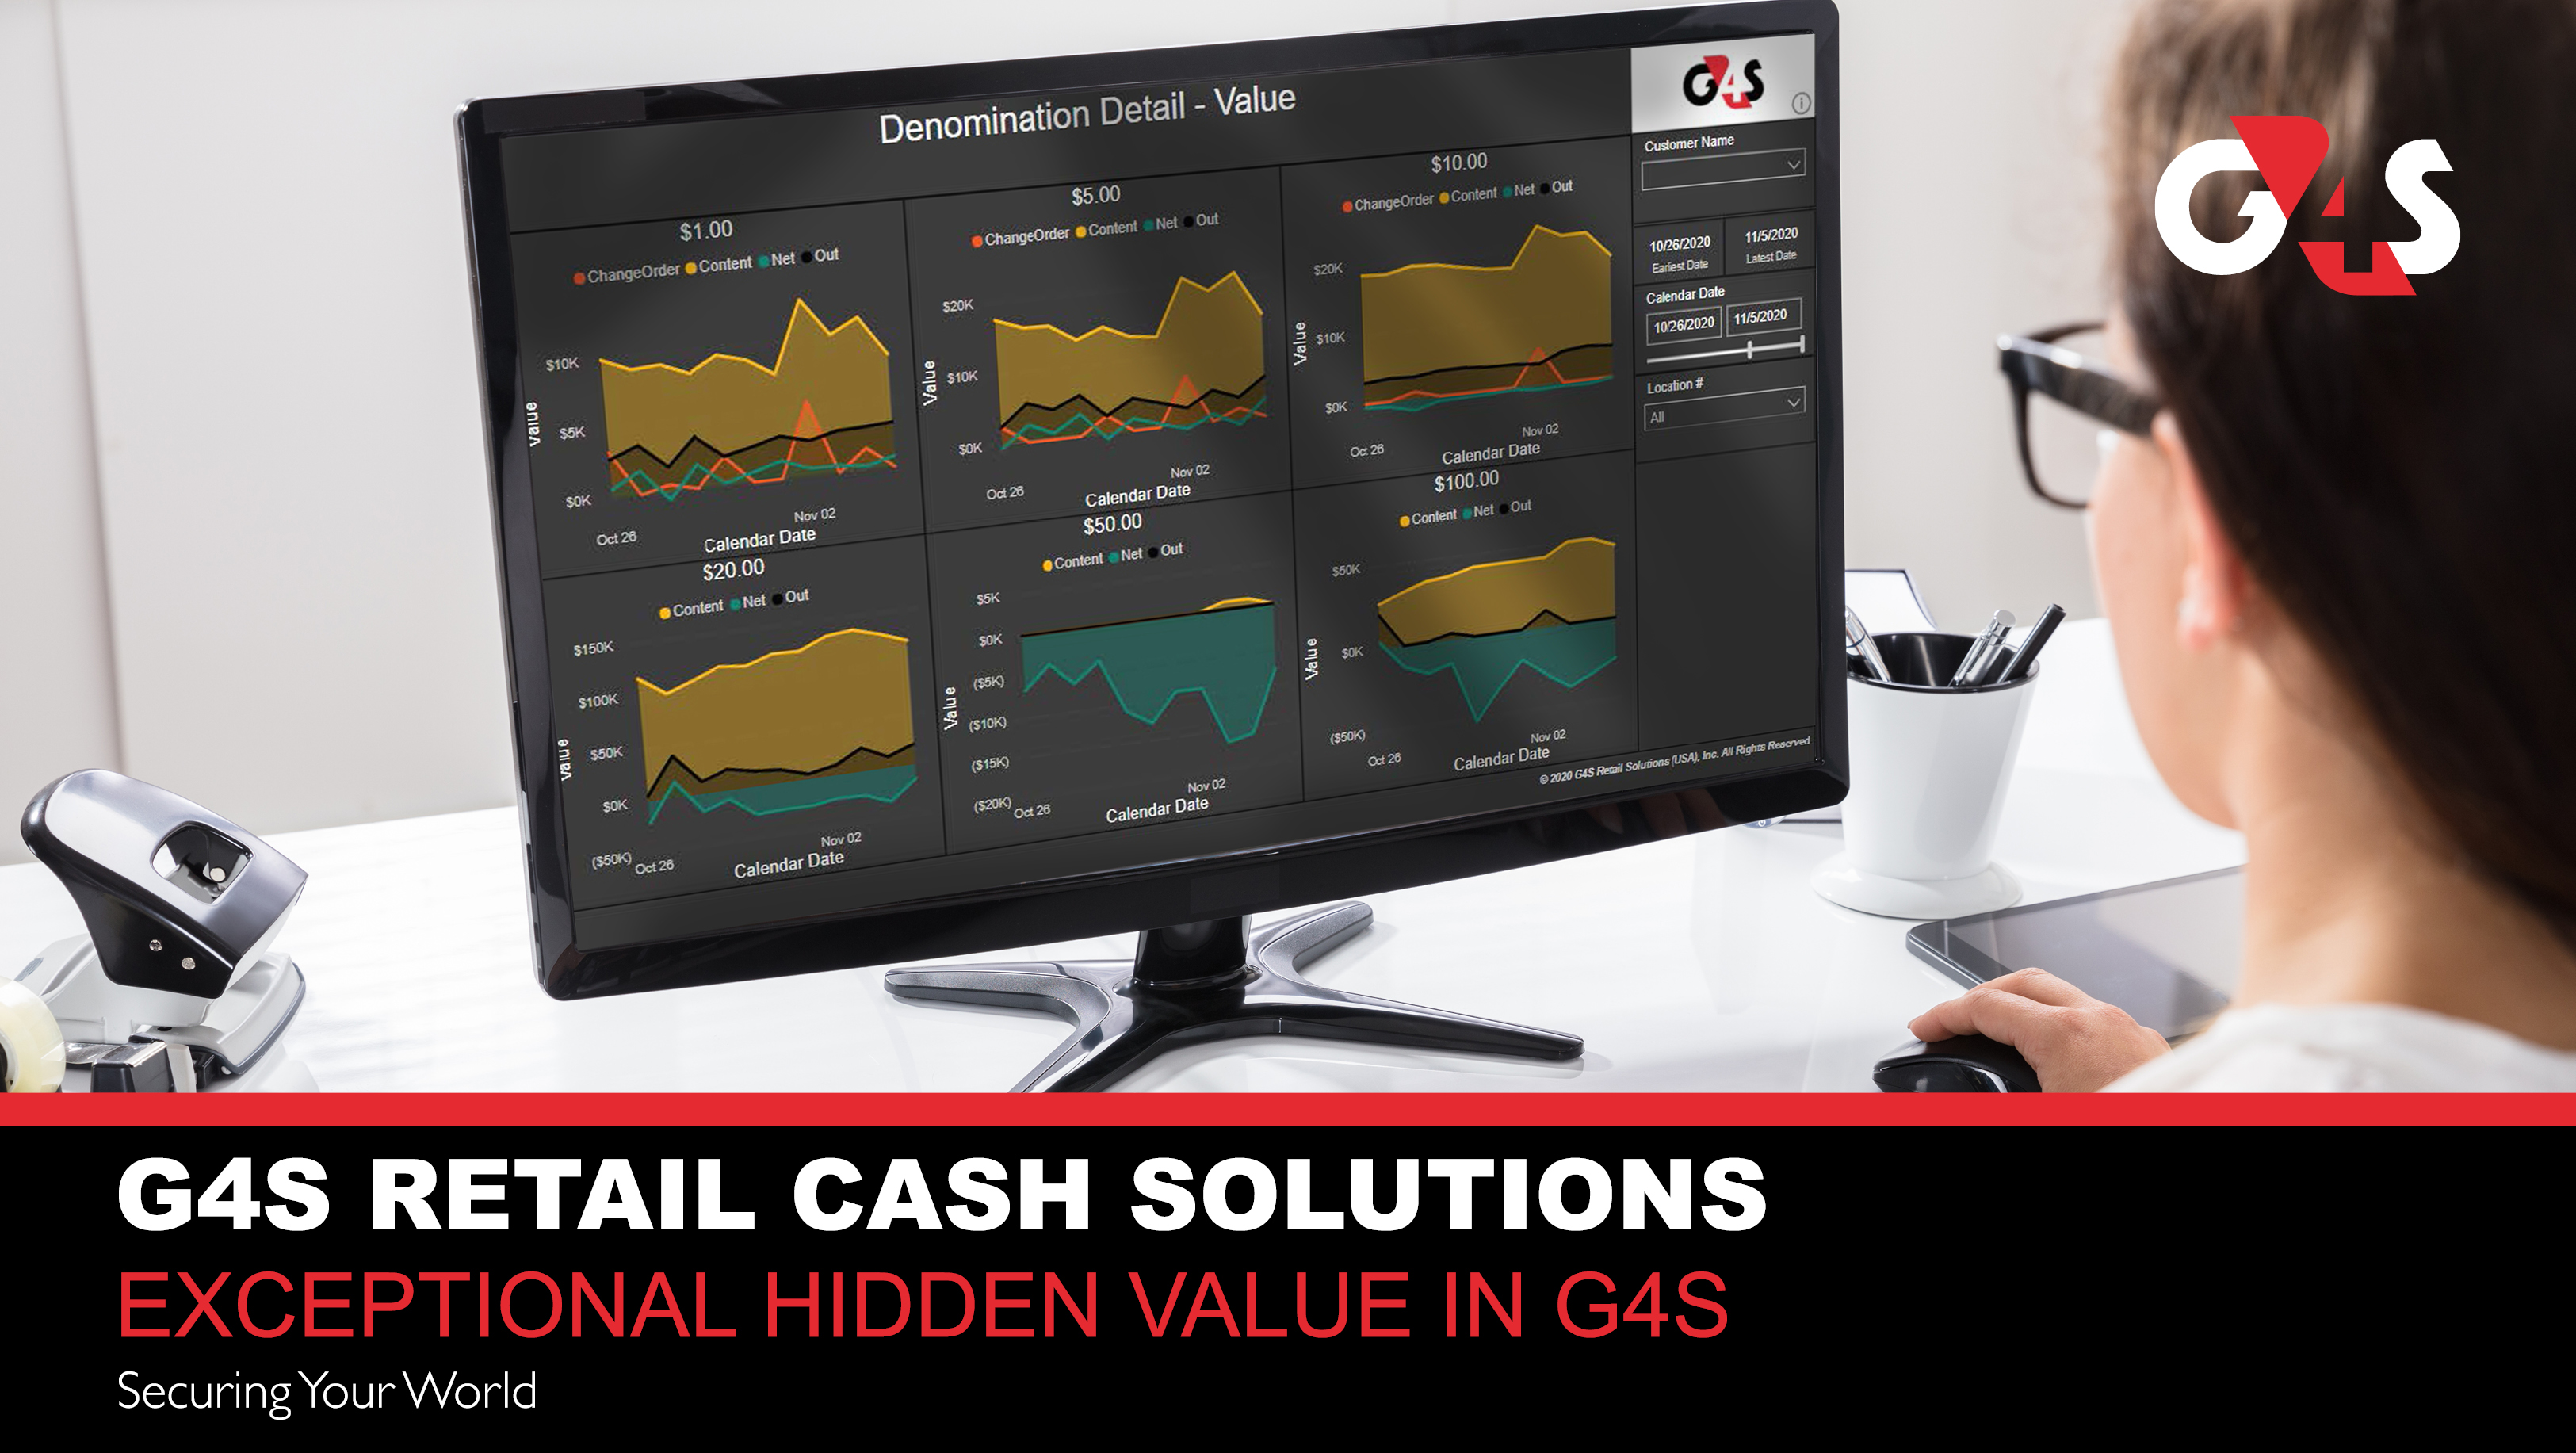 G4S Retail Cash Solutions